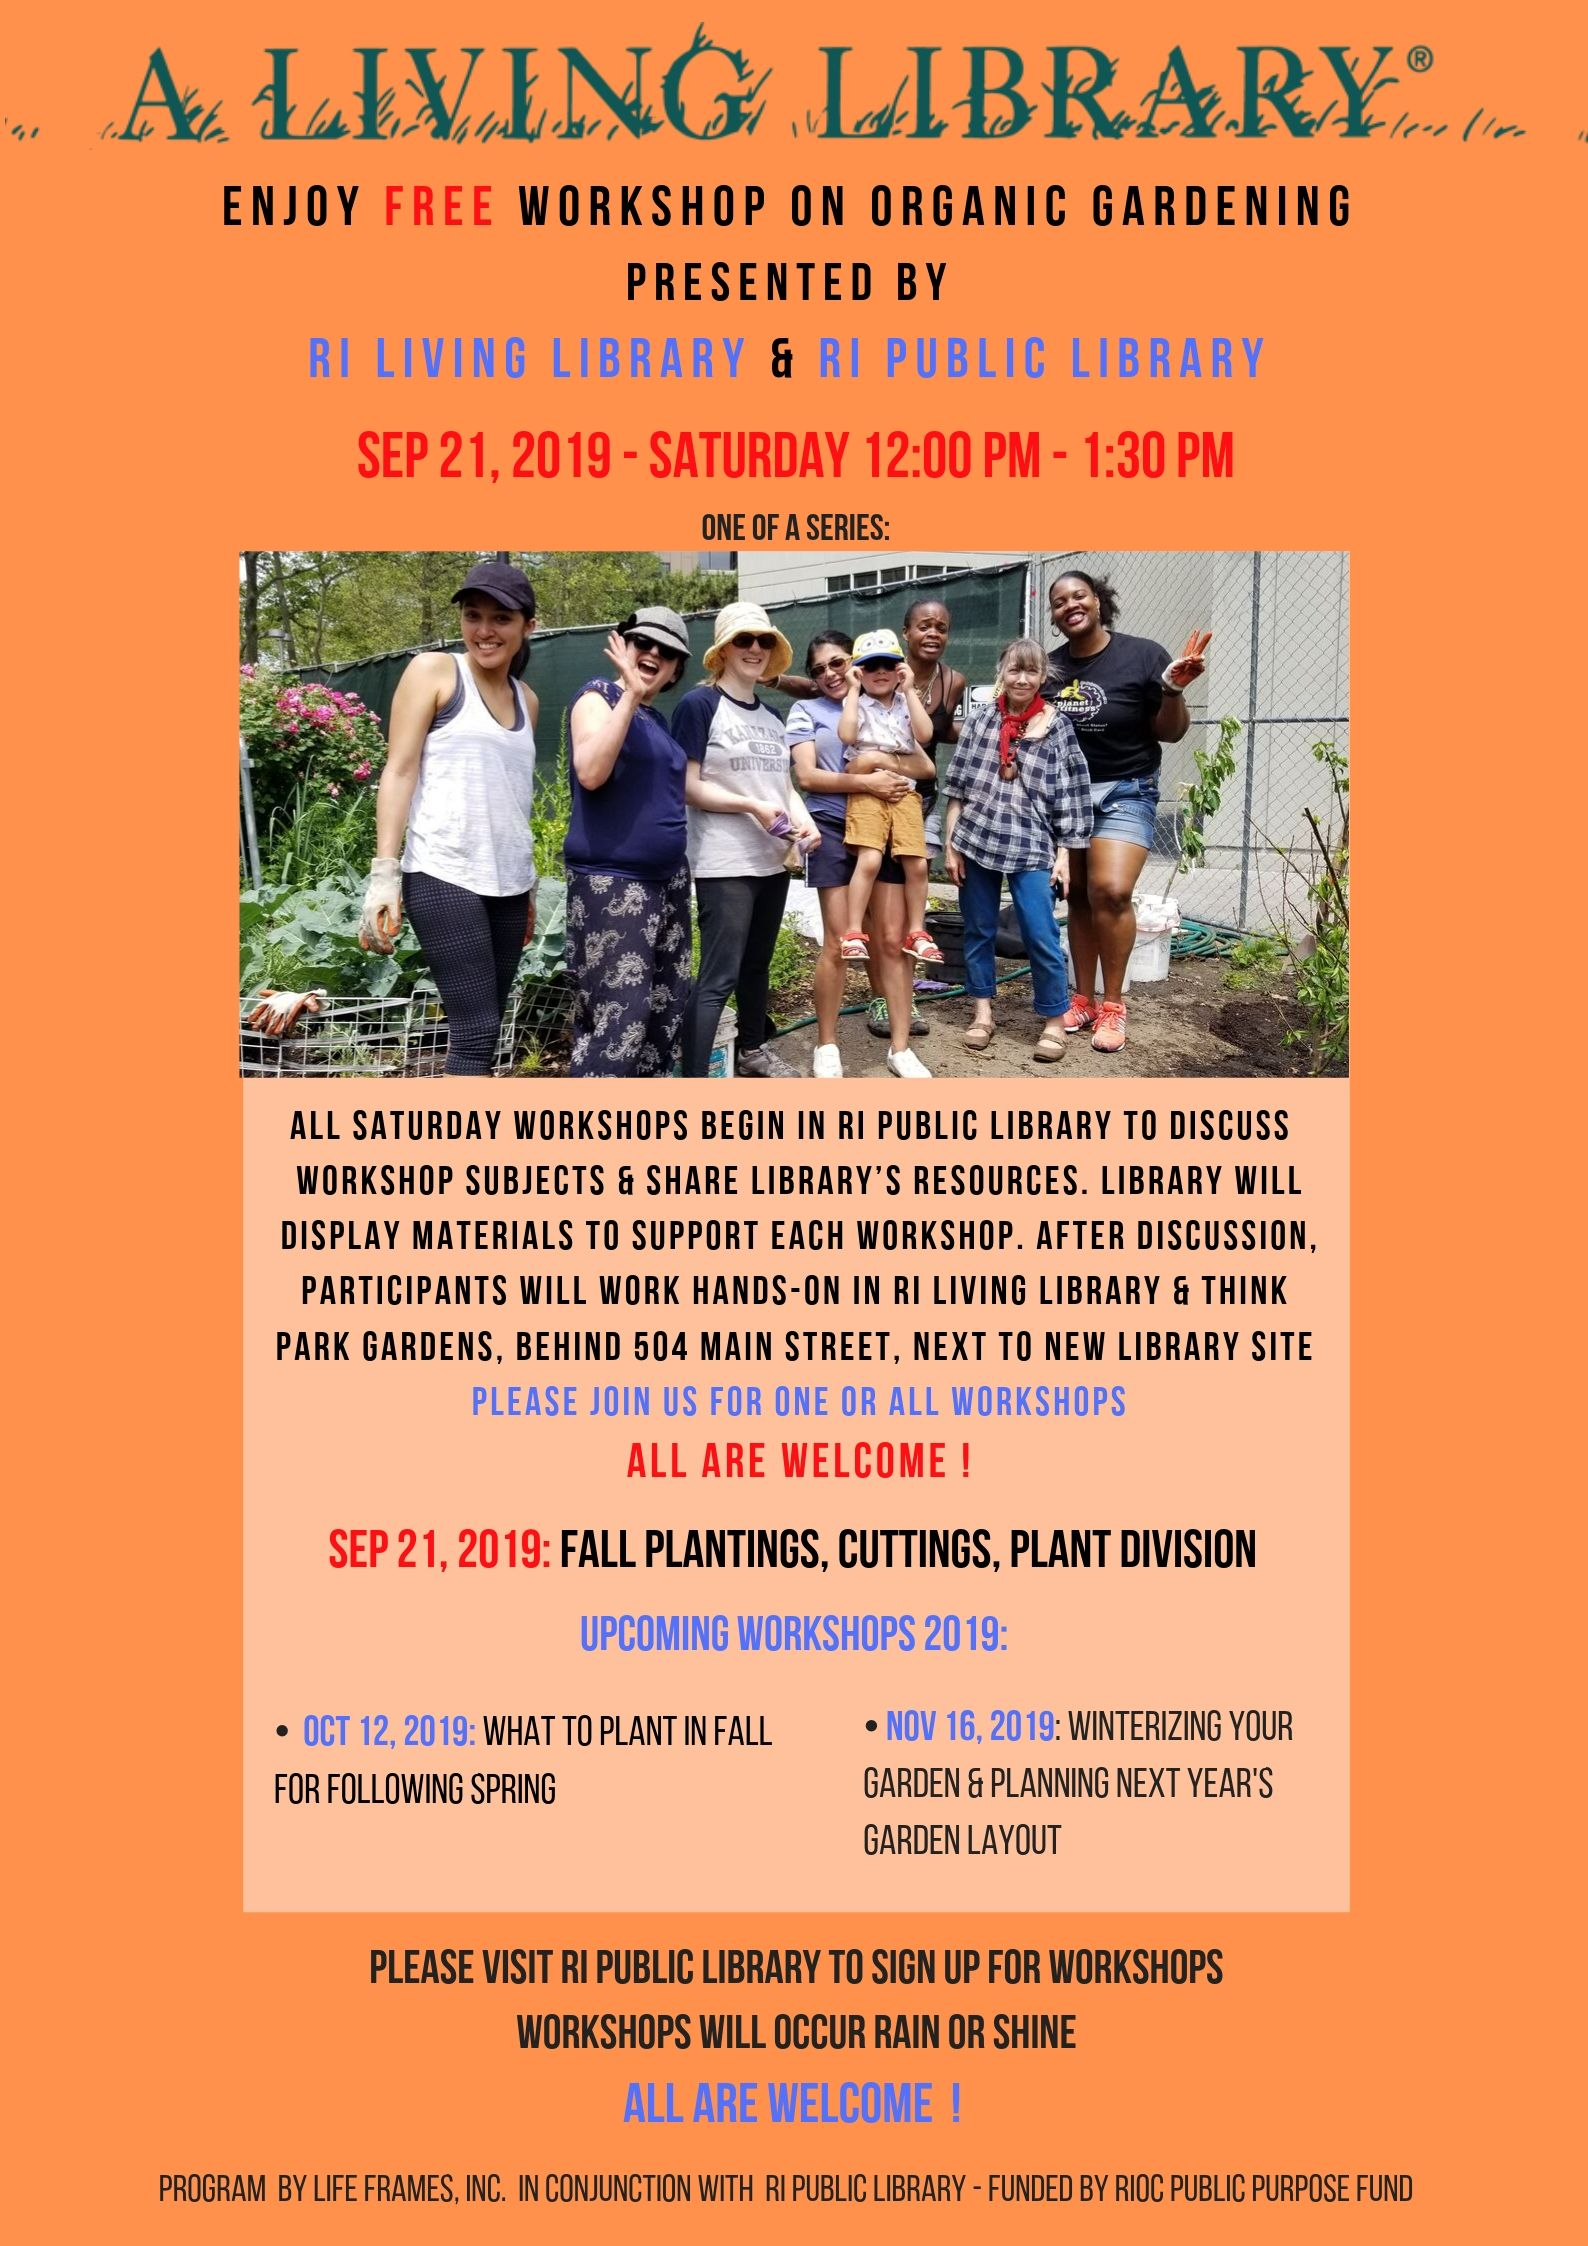 Free Organic Gardening Workshop by RI Living Library